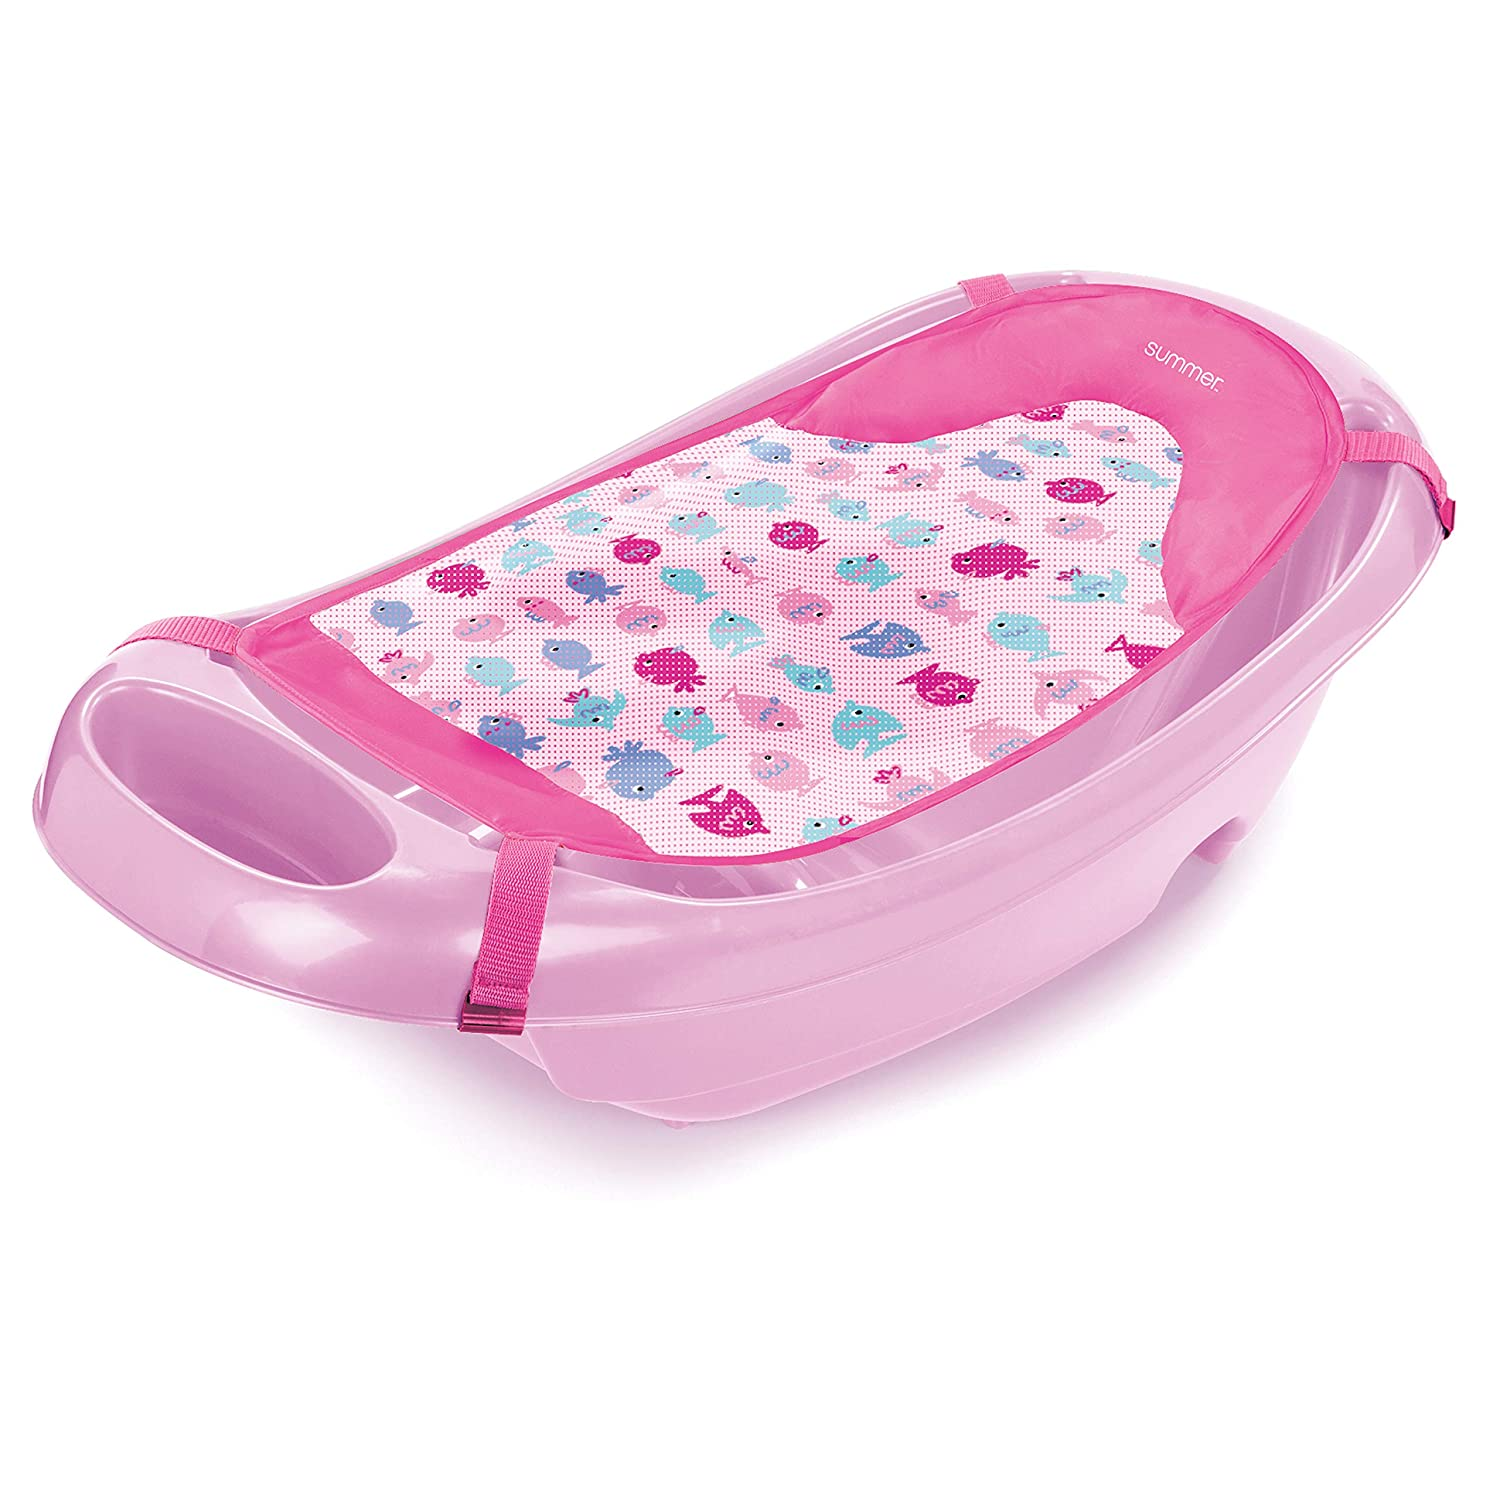 Summer Splish 'N Splash Newborn to Toddler Bath Tub, Pink